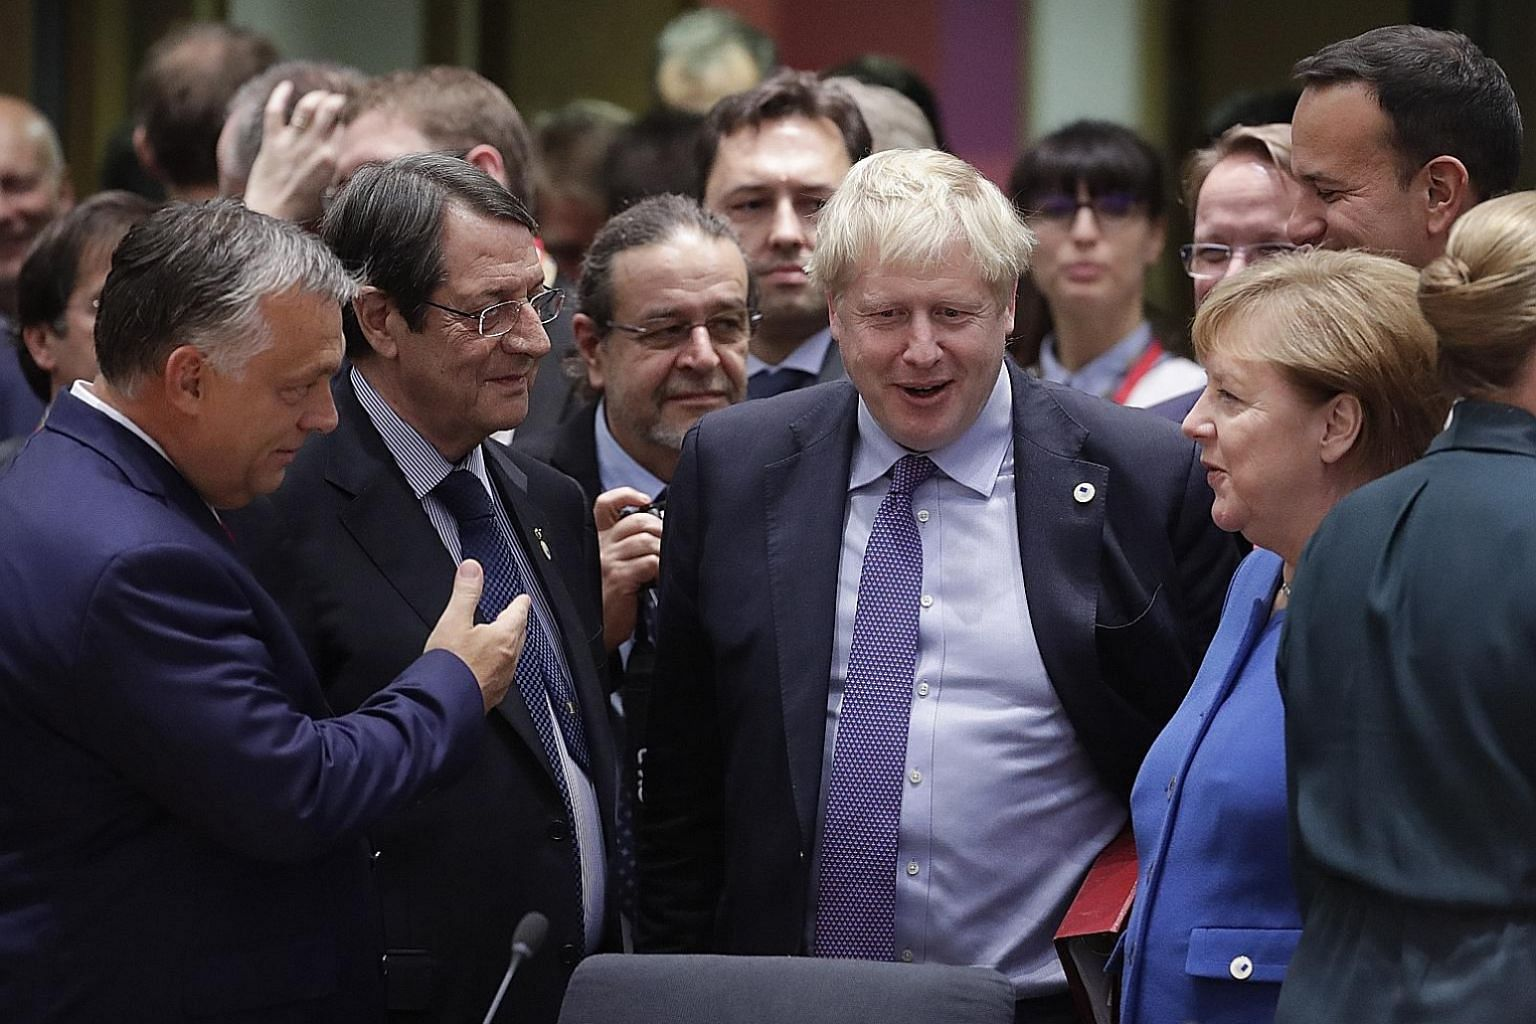 British Prime Minister Boris Johnson (centre), seen here with (from far left) Hungarian Prime Minister Viktor Orban, Cyprus President Nicos Anastasiades and German Chancellor Angela Merkel in Brussels on Thursday, predicts that his latest Brexit deal